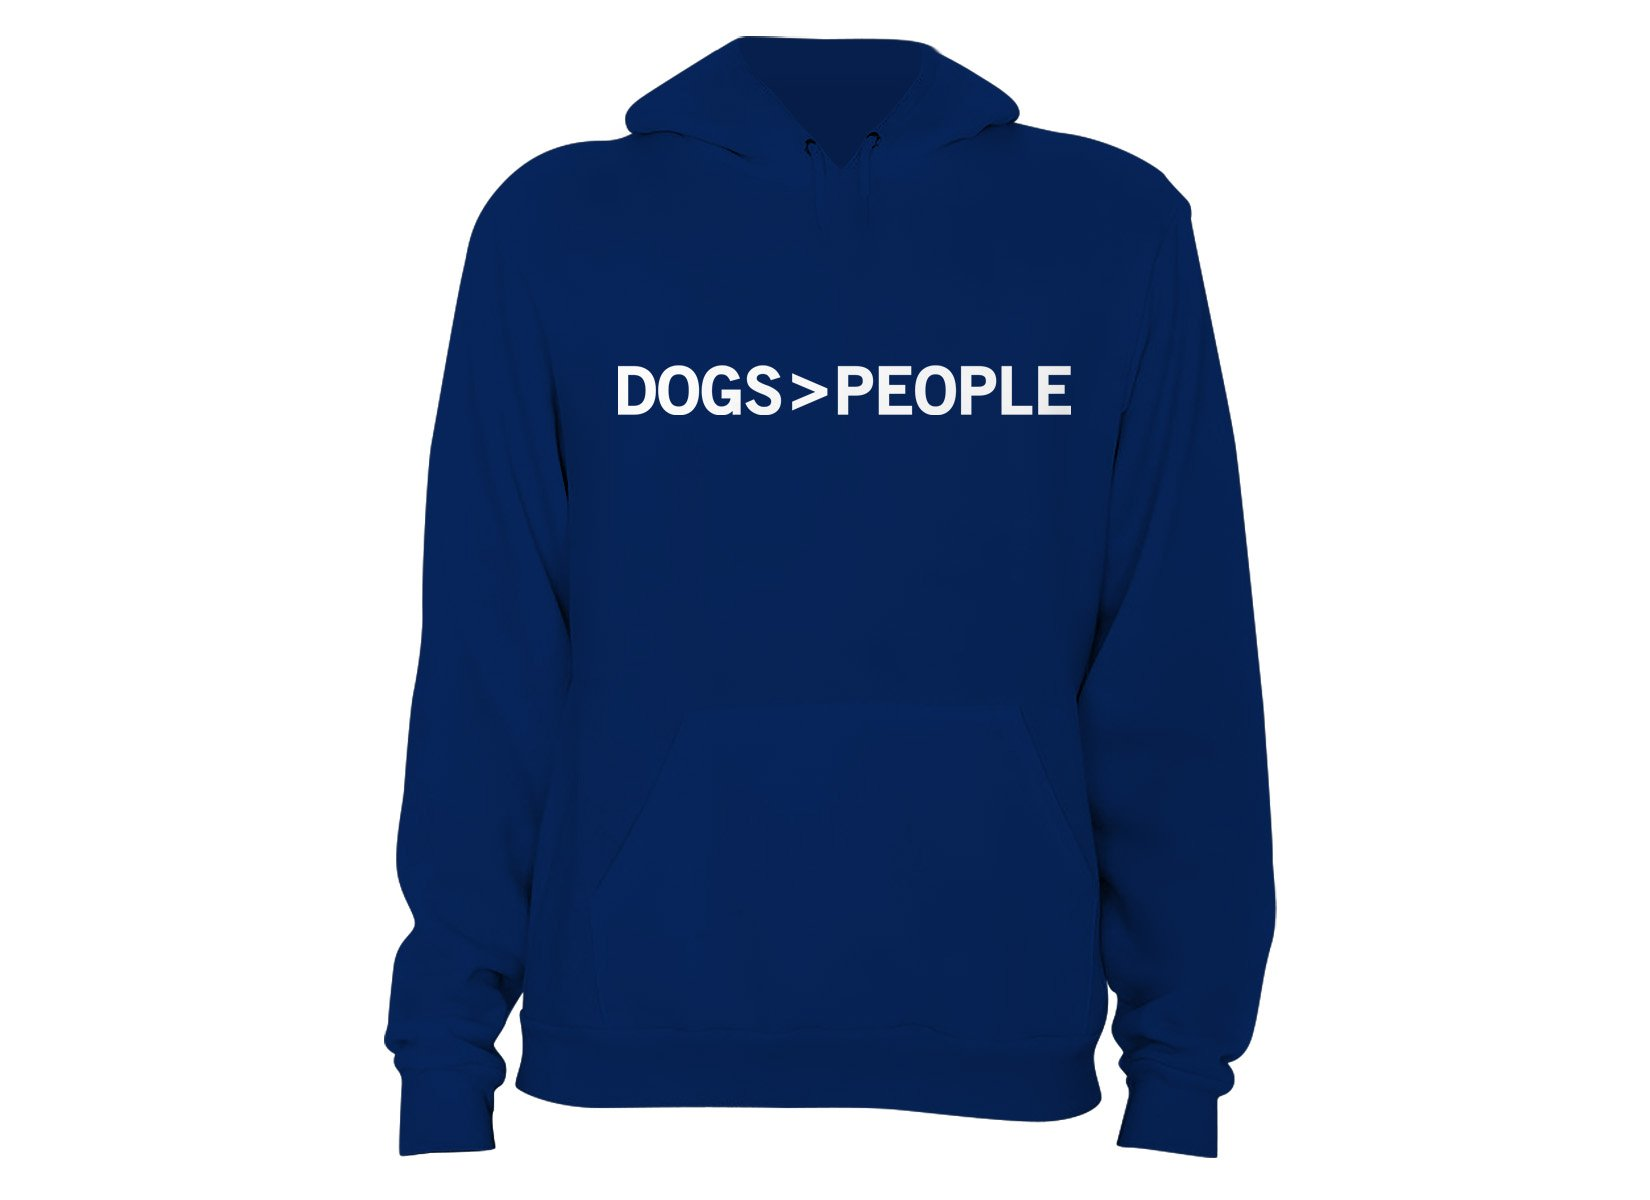 Dogs>People on Hoodie